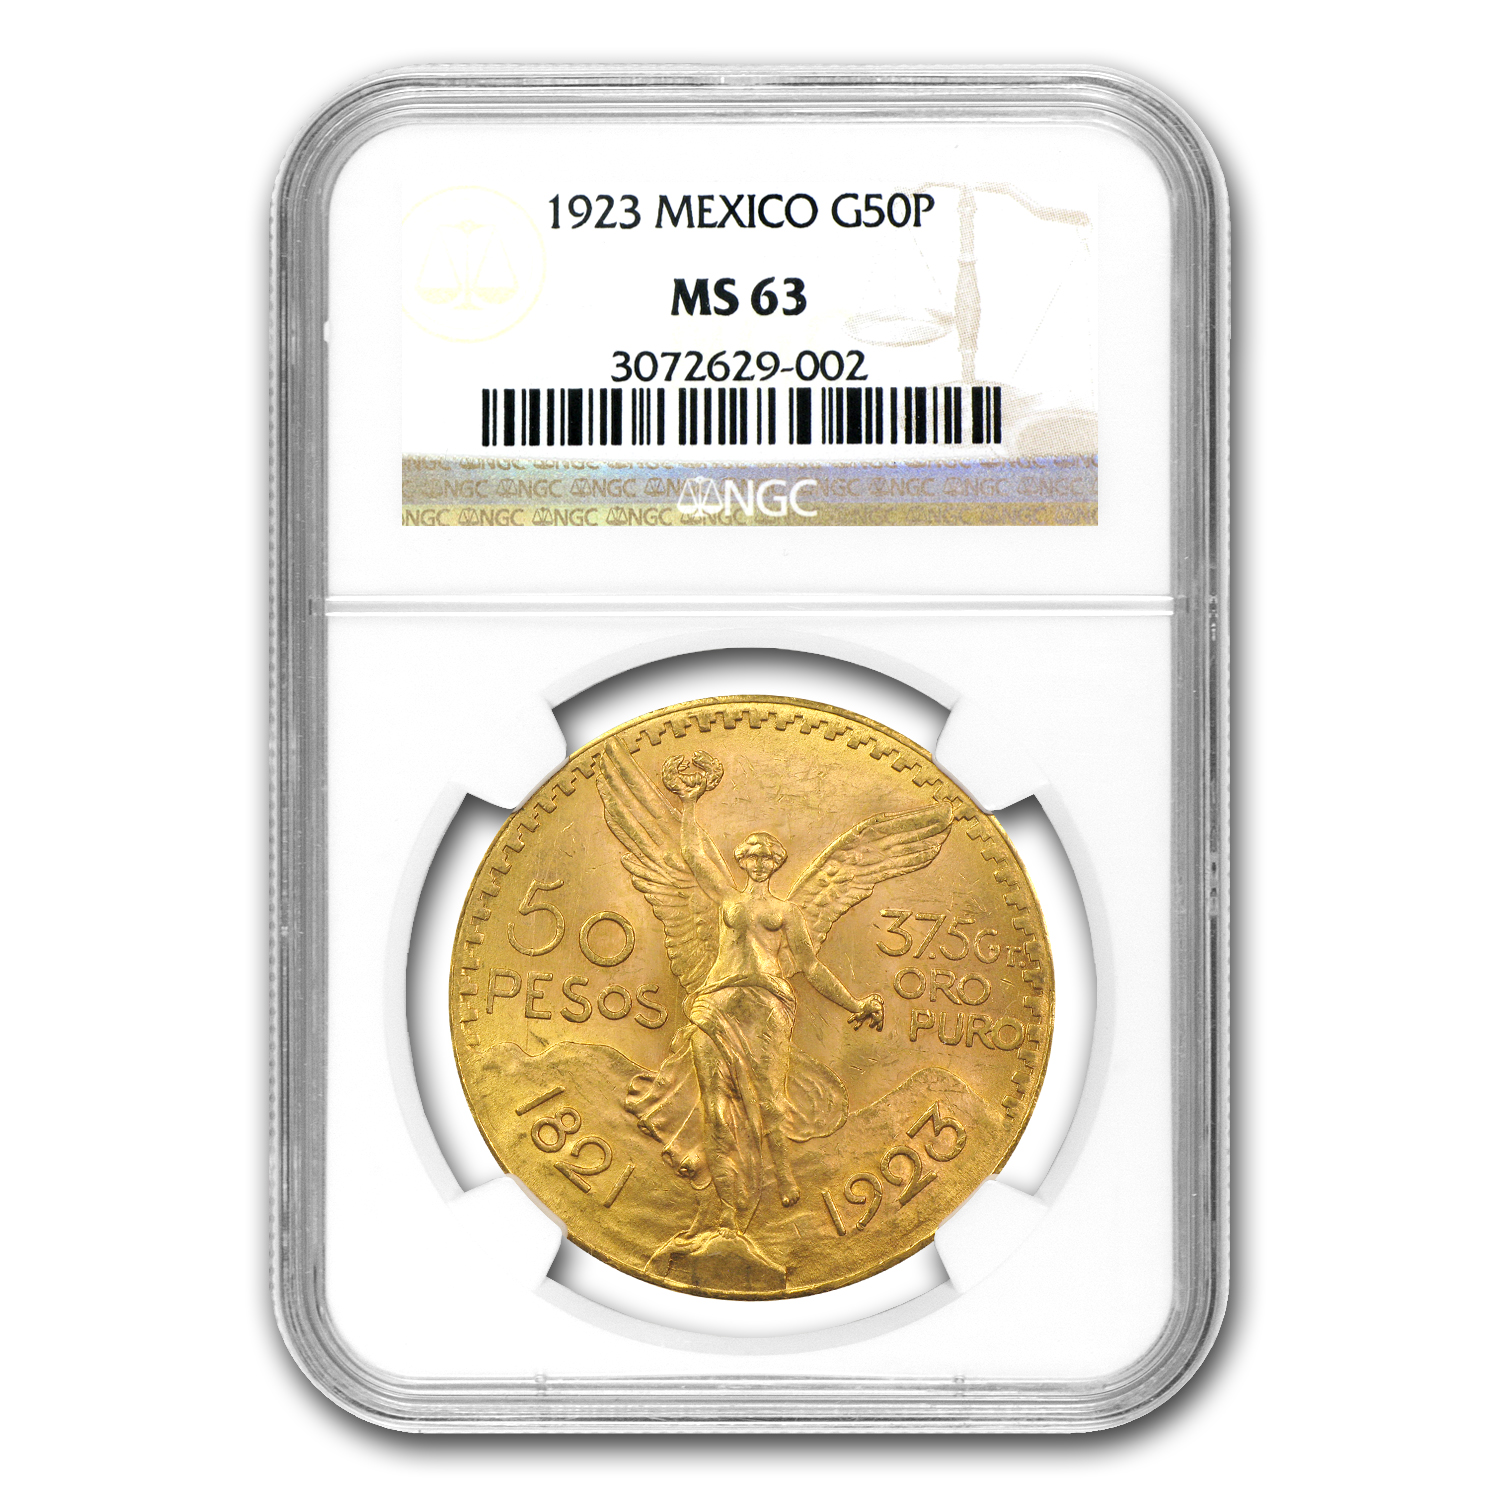 Mexico 1923 50 Pesos Gold Coin - MS-63 NGC